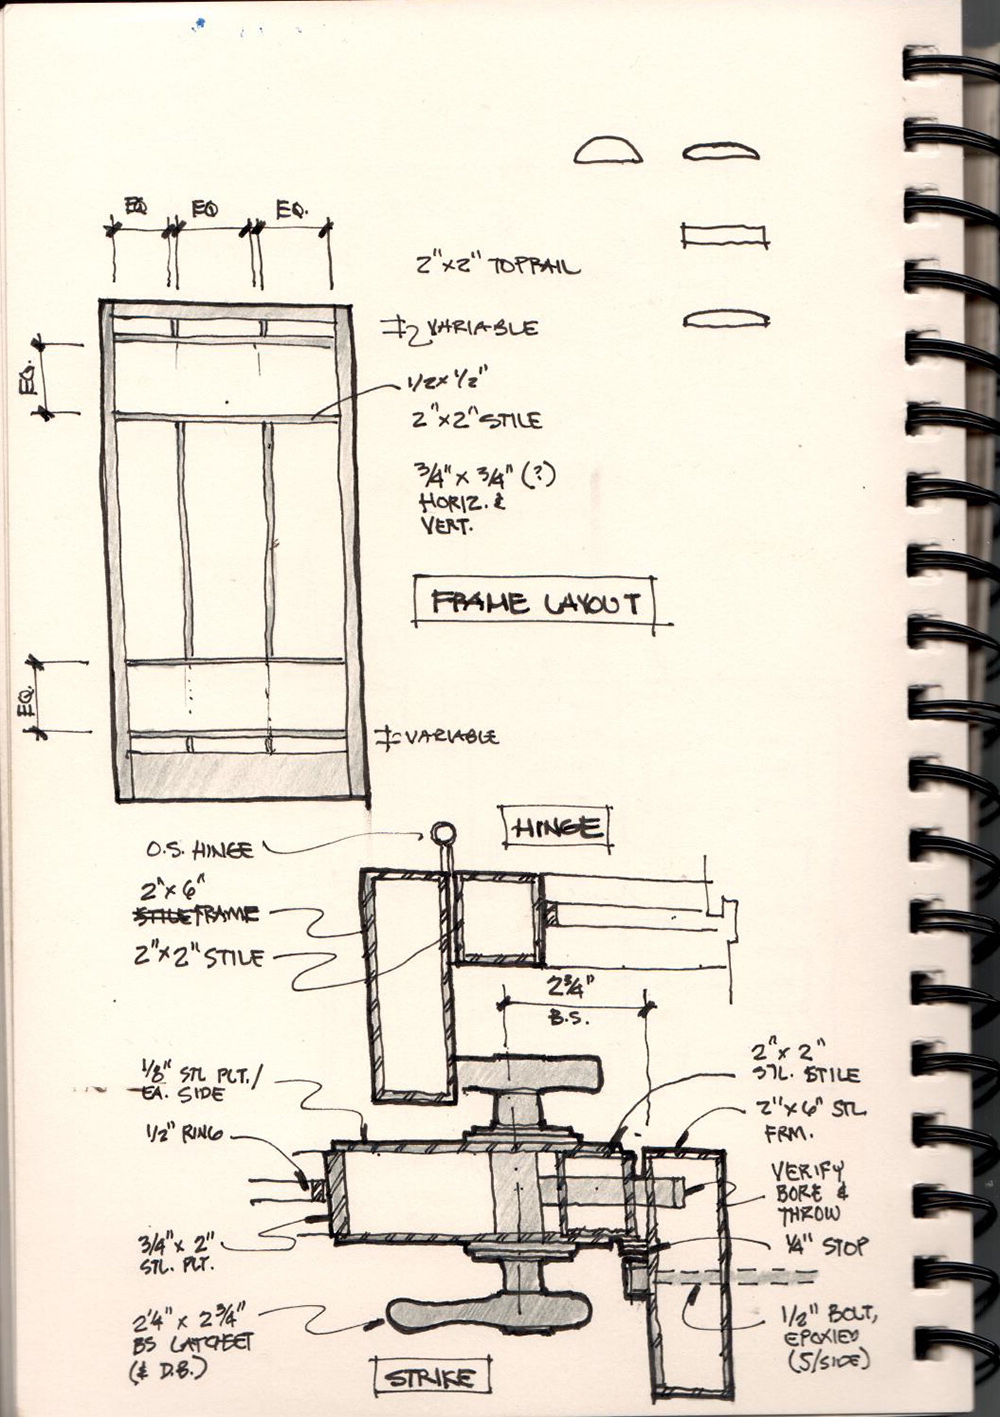 georgearchitecture_studio_mmw-gate_sketch06.jpg